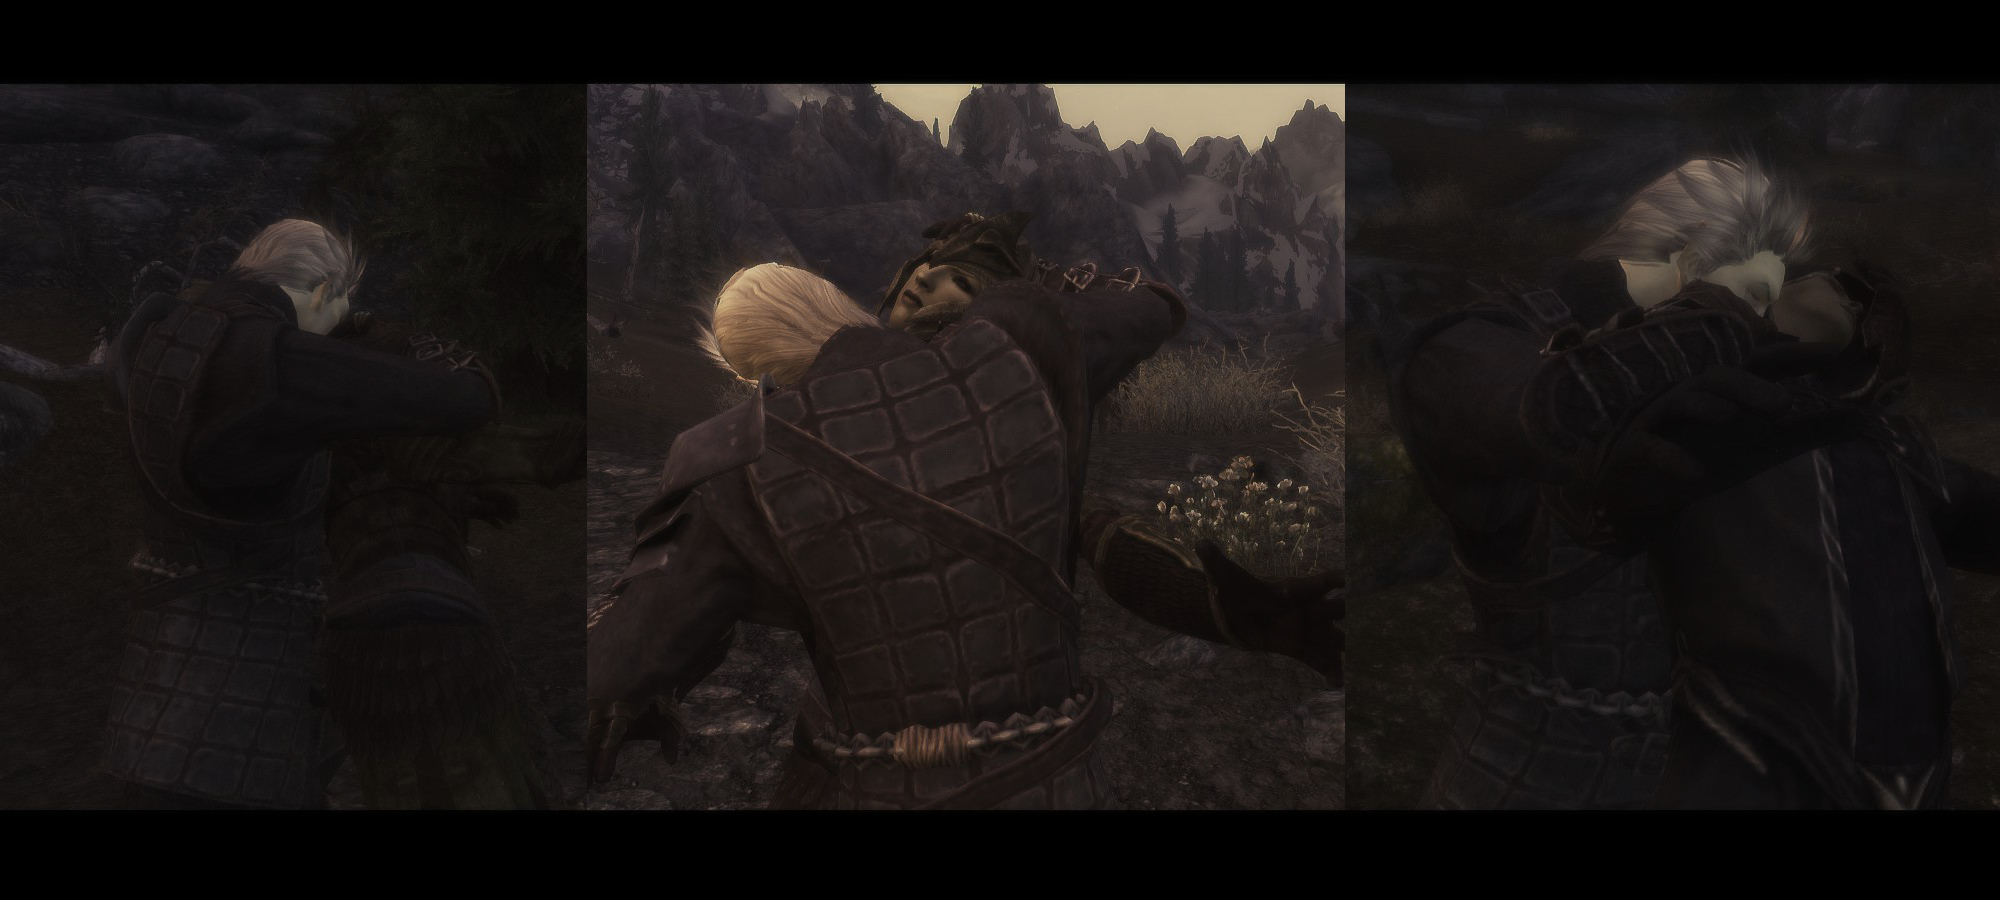 The Three Unlucky Thalmor